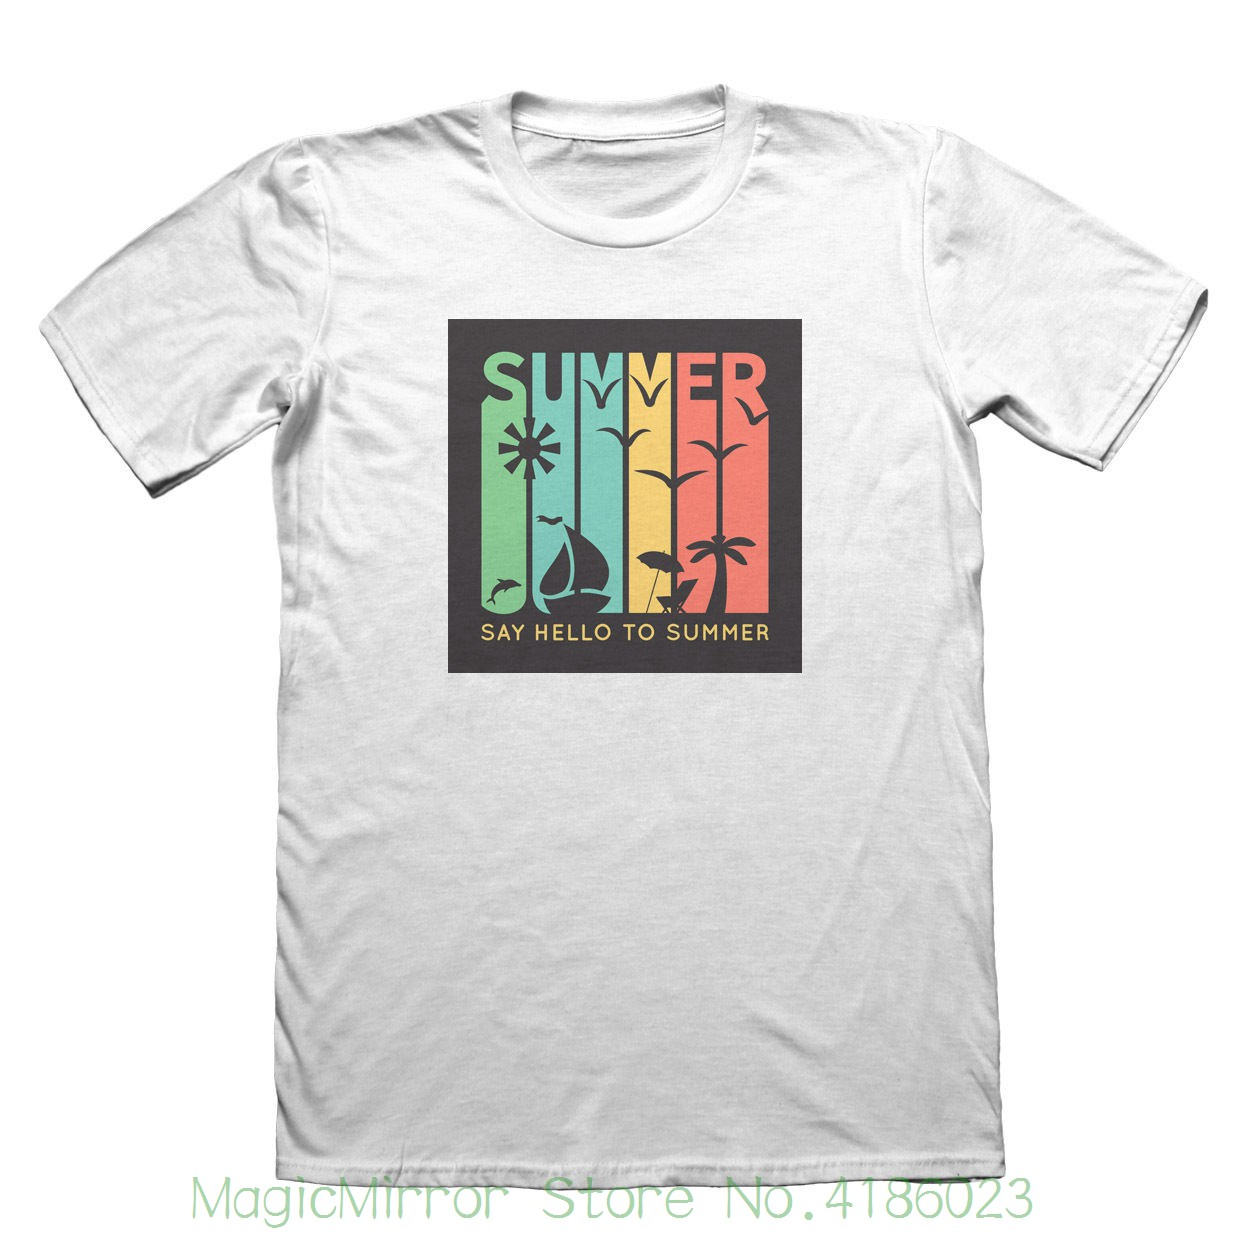 Say Hello To Summer T-shirt - Mens Fathers Day Christmas Gift #7548 100% Cotton Brand New T-shirts